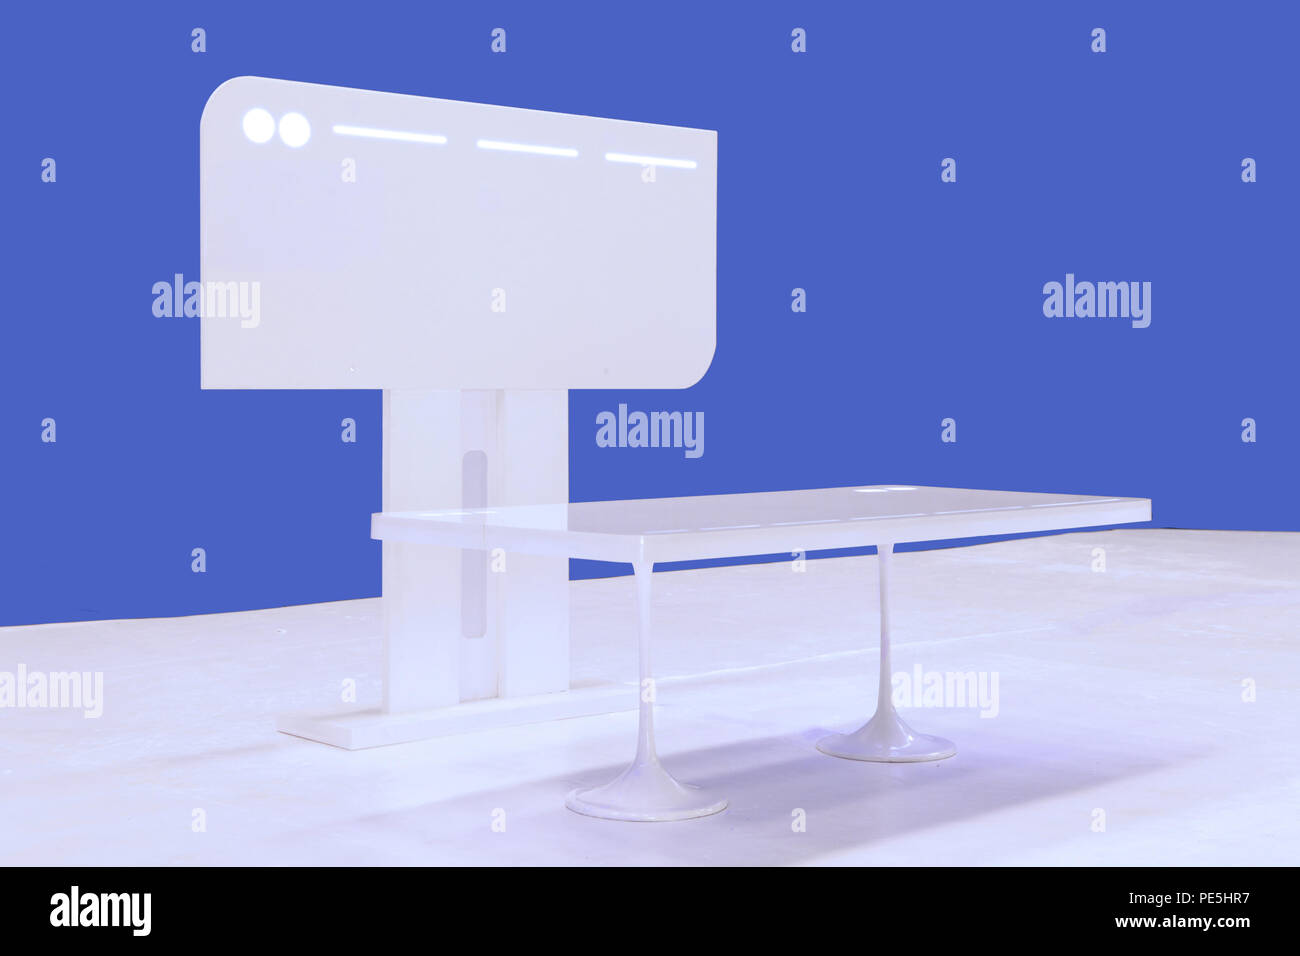 the mackup of modern table and monitor with LED light look like from sci-fi movie - Stock Image